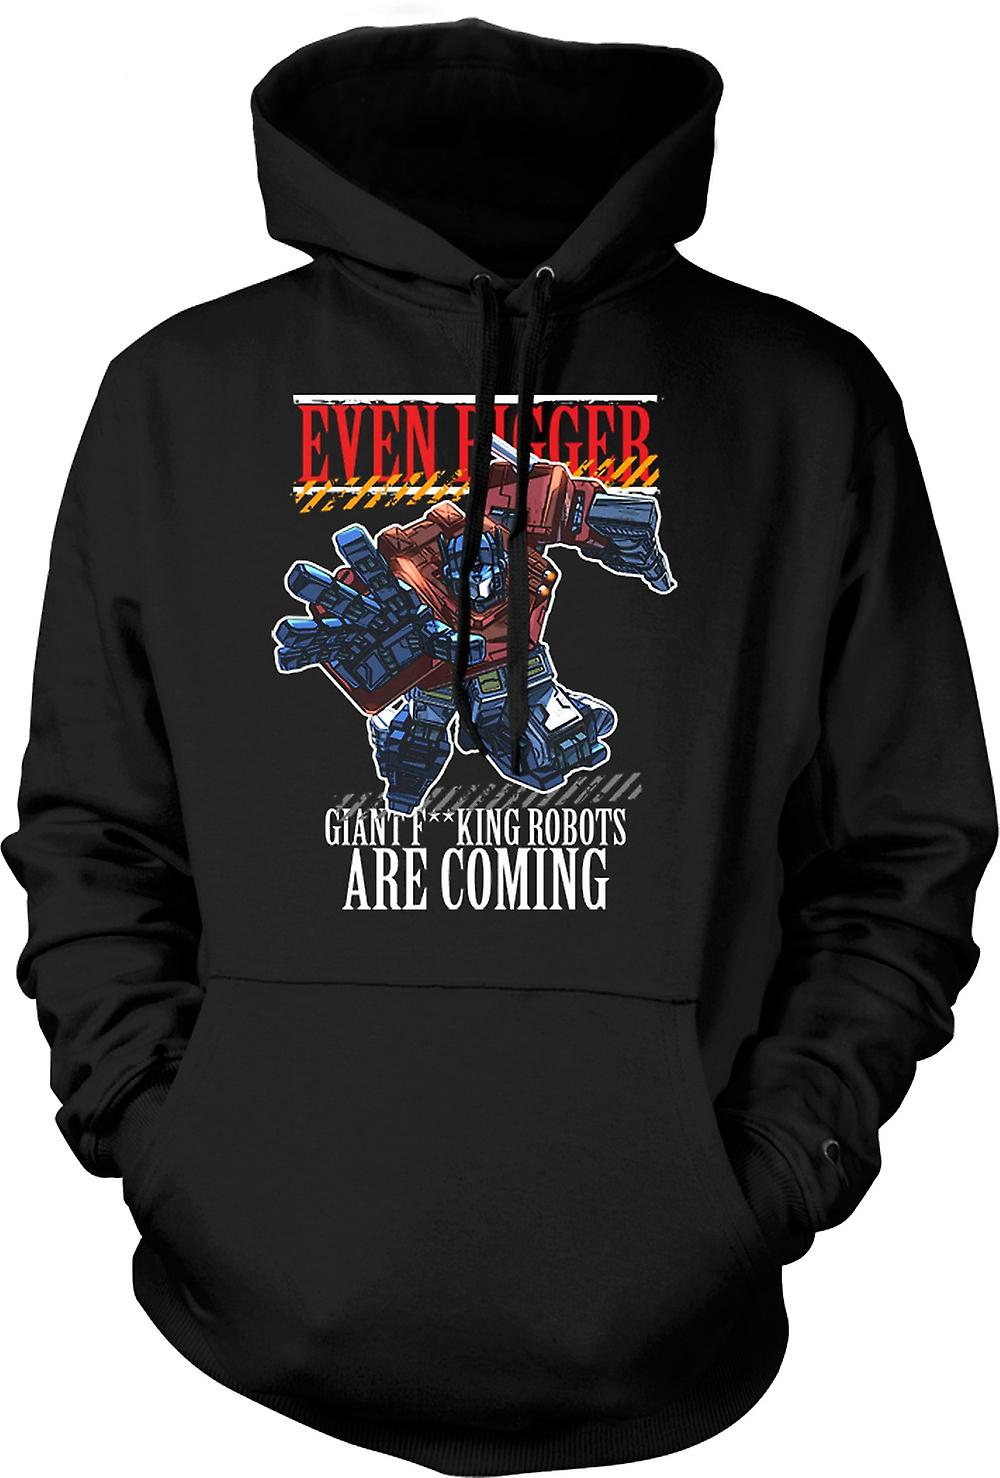 Mens Hoodie - Transformers Giant - F*cking Robots